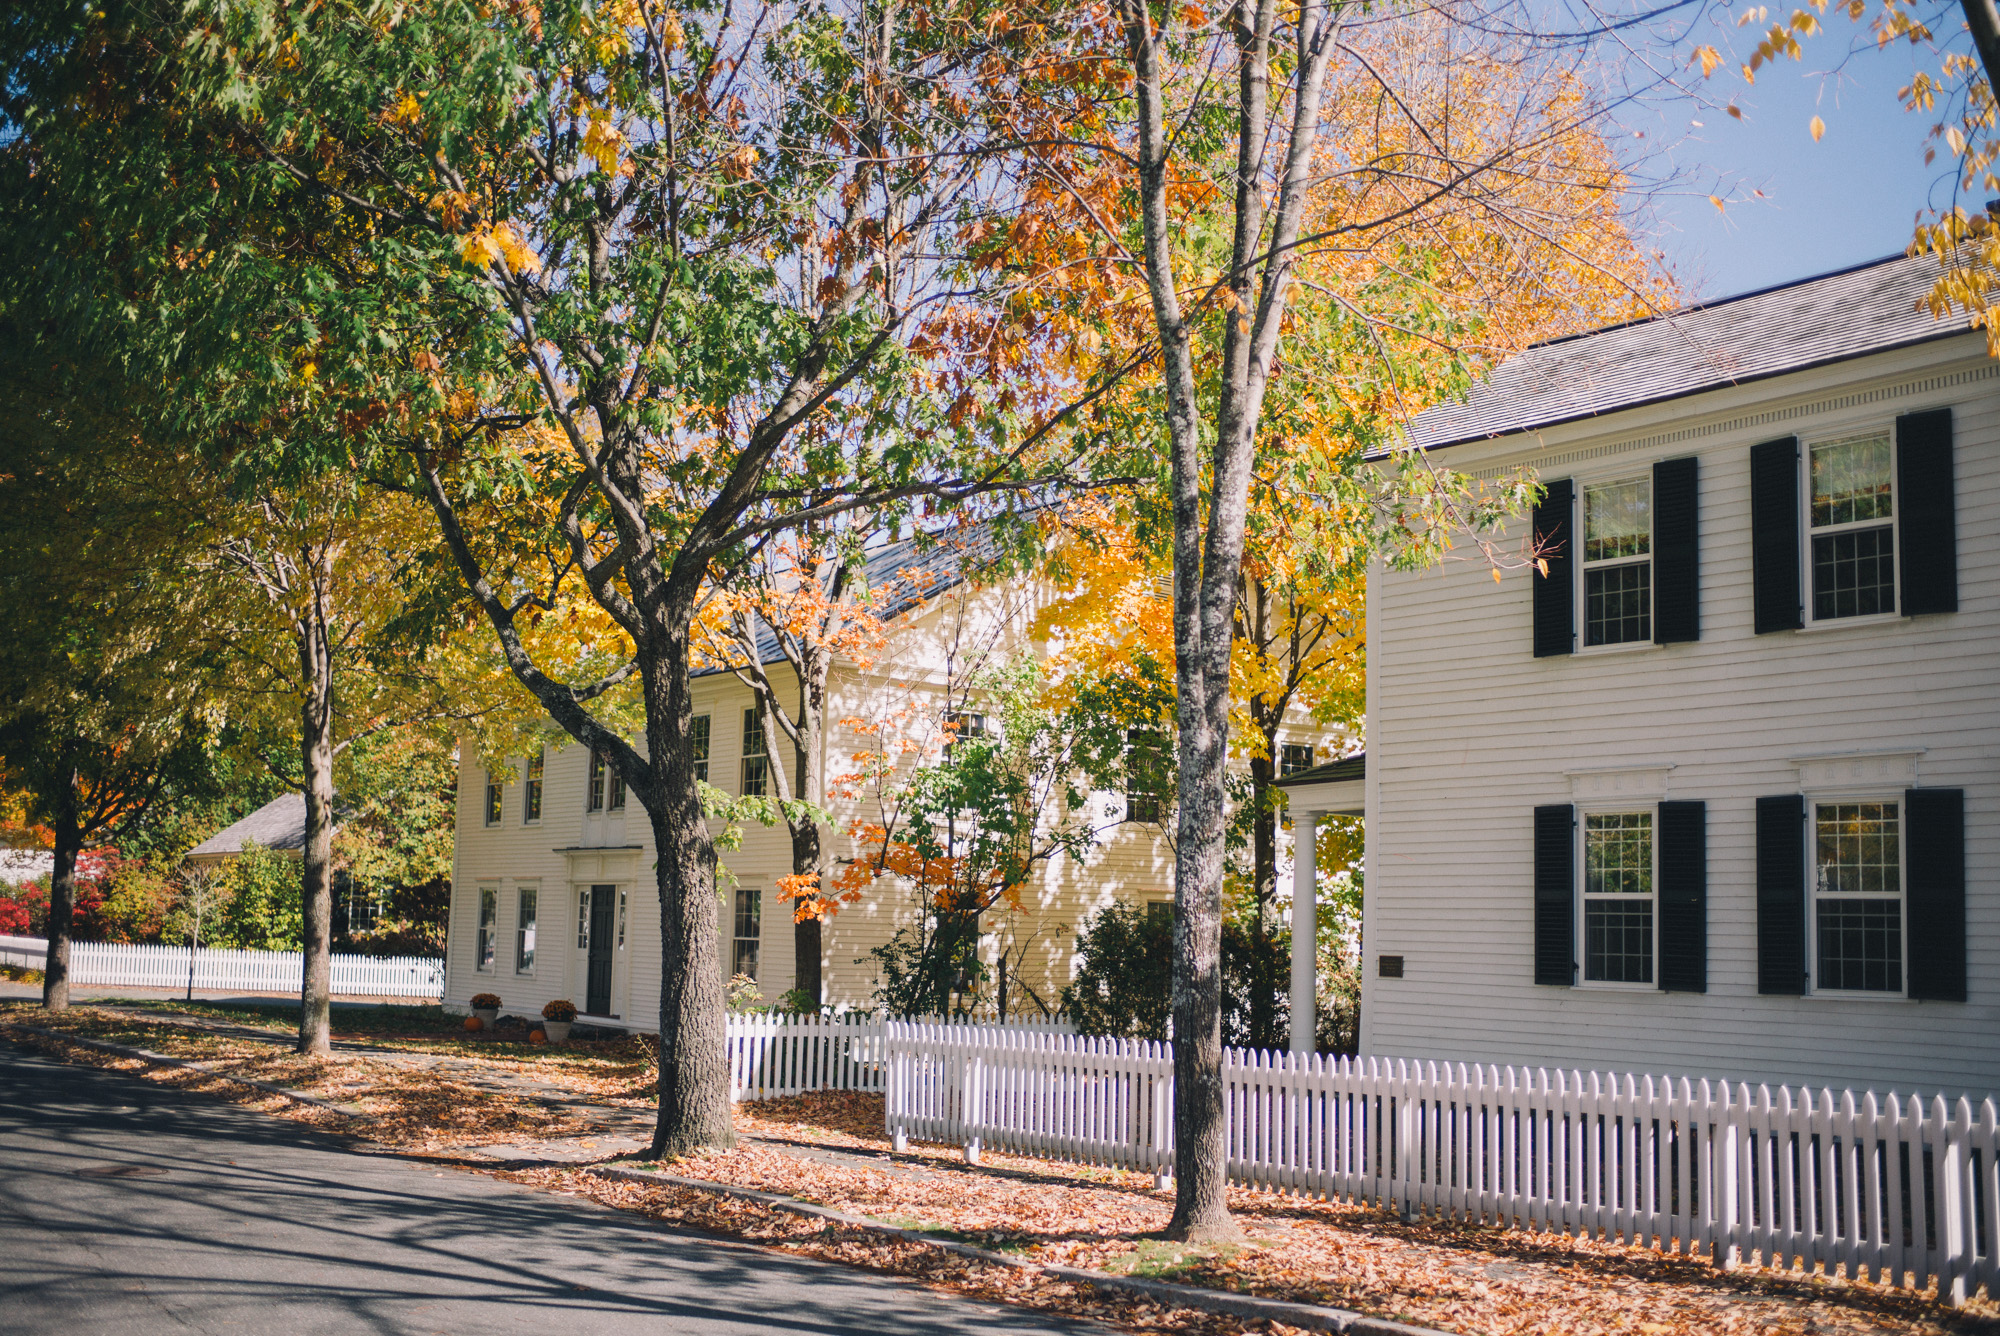 gmg-woodstock-vermont-fall-1002872